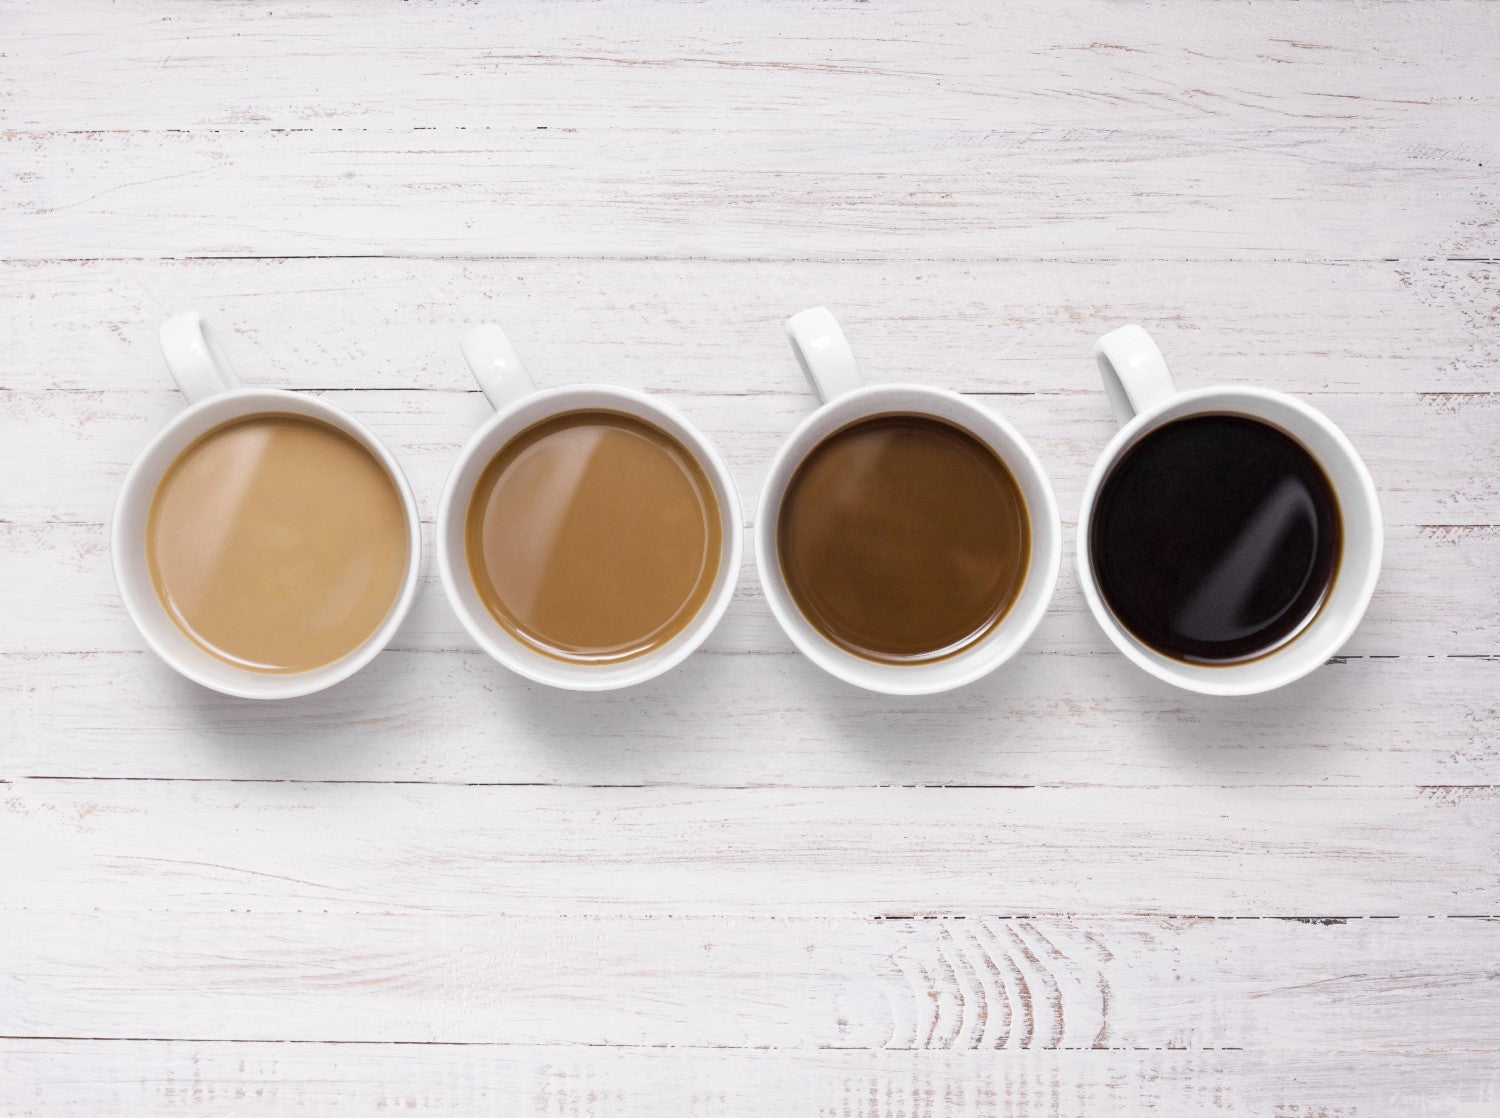 4 different coffees